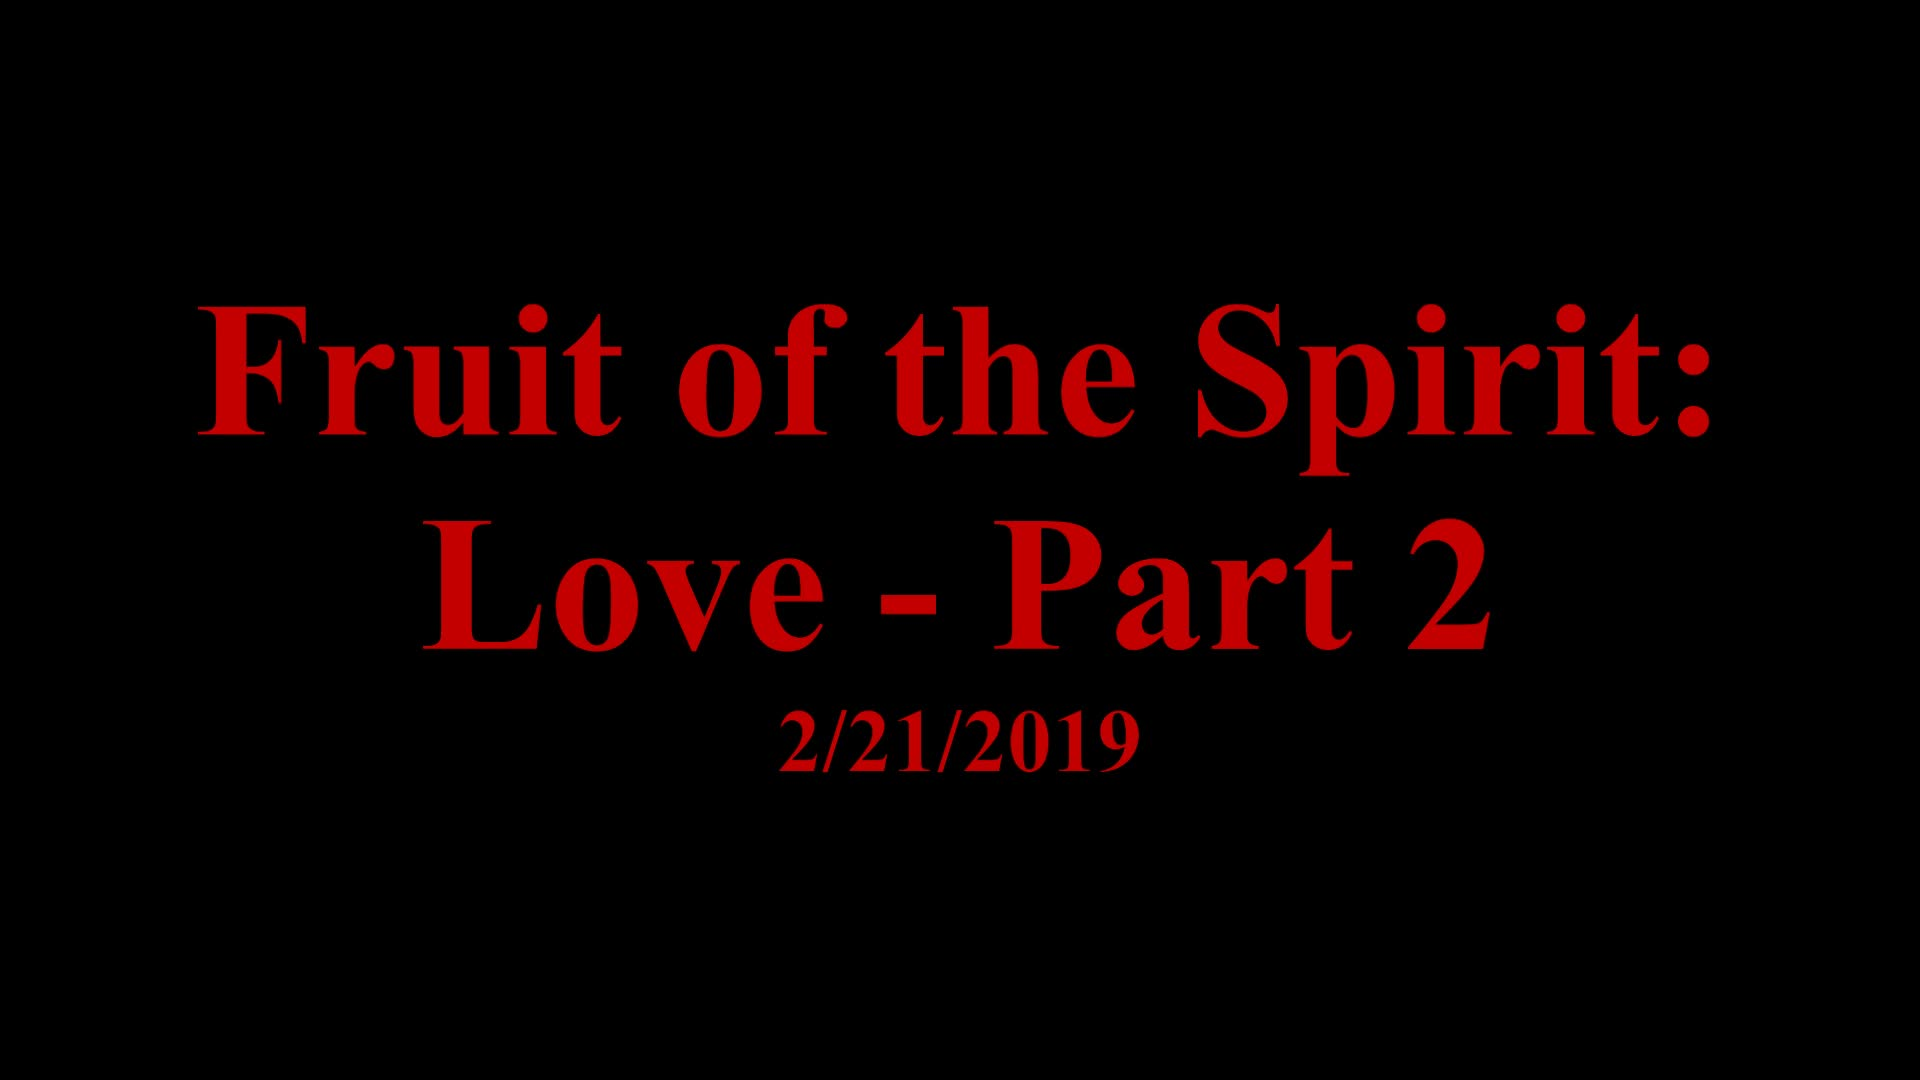 Fruit of the Spirit Love Part 2